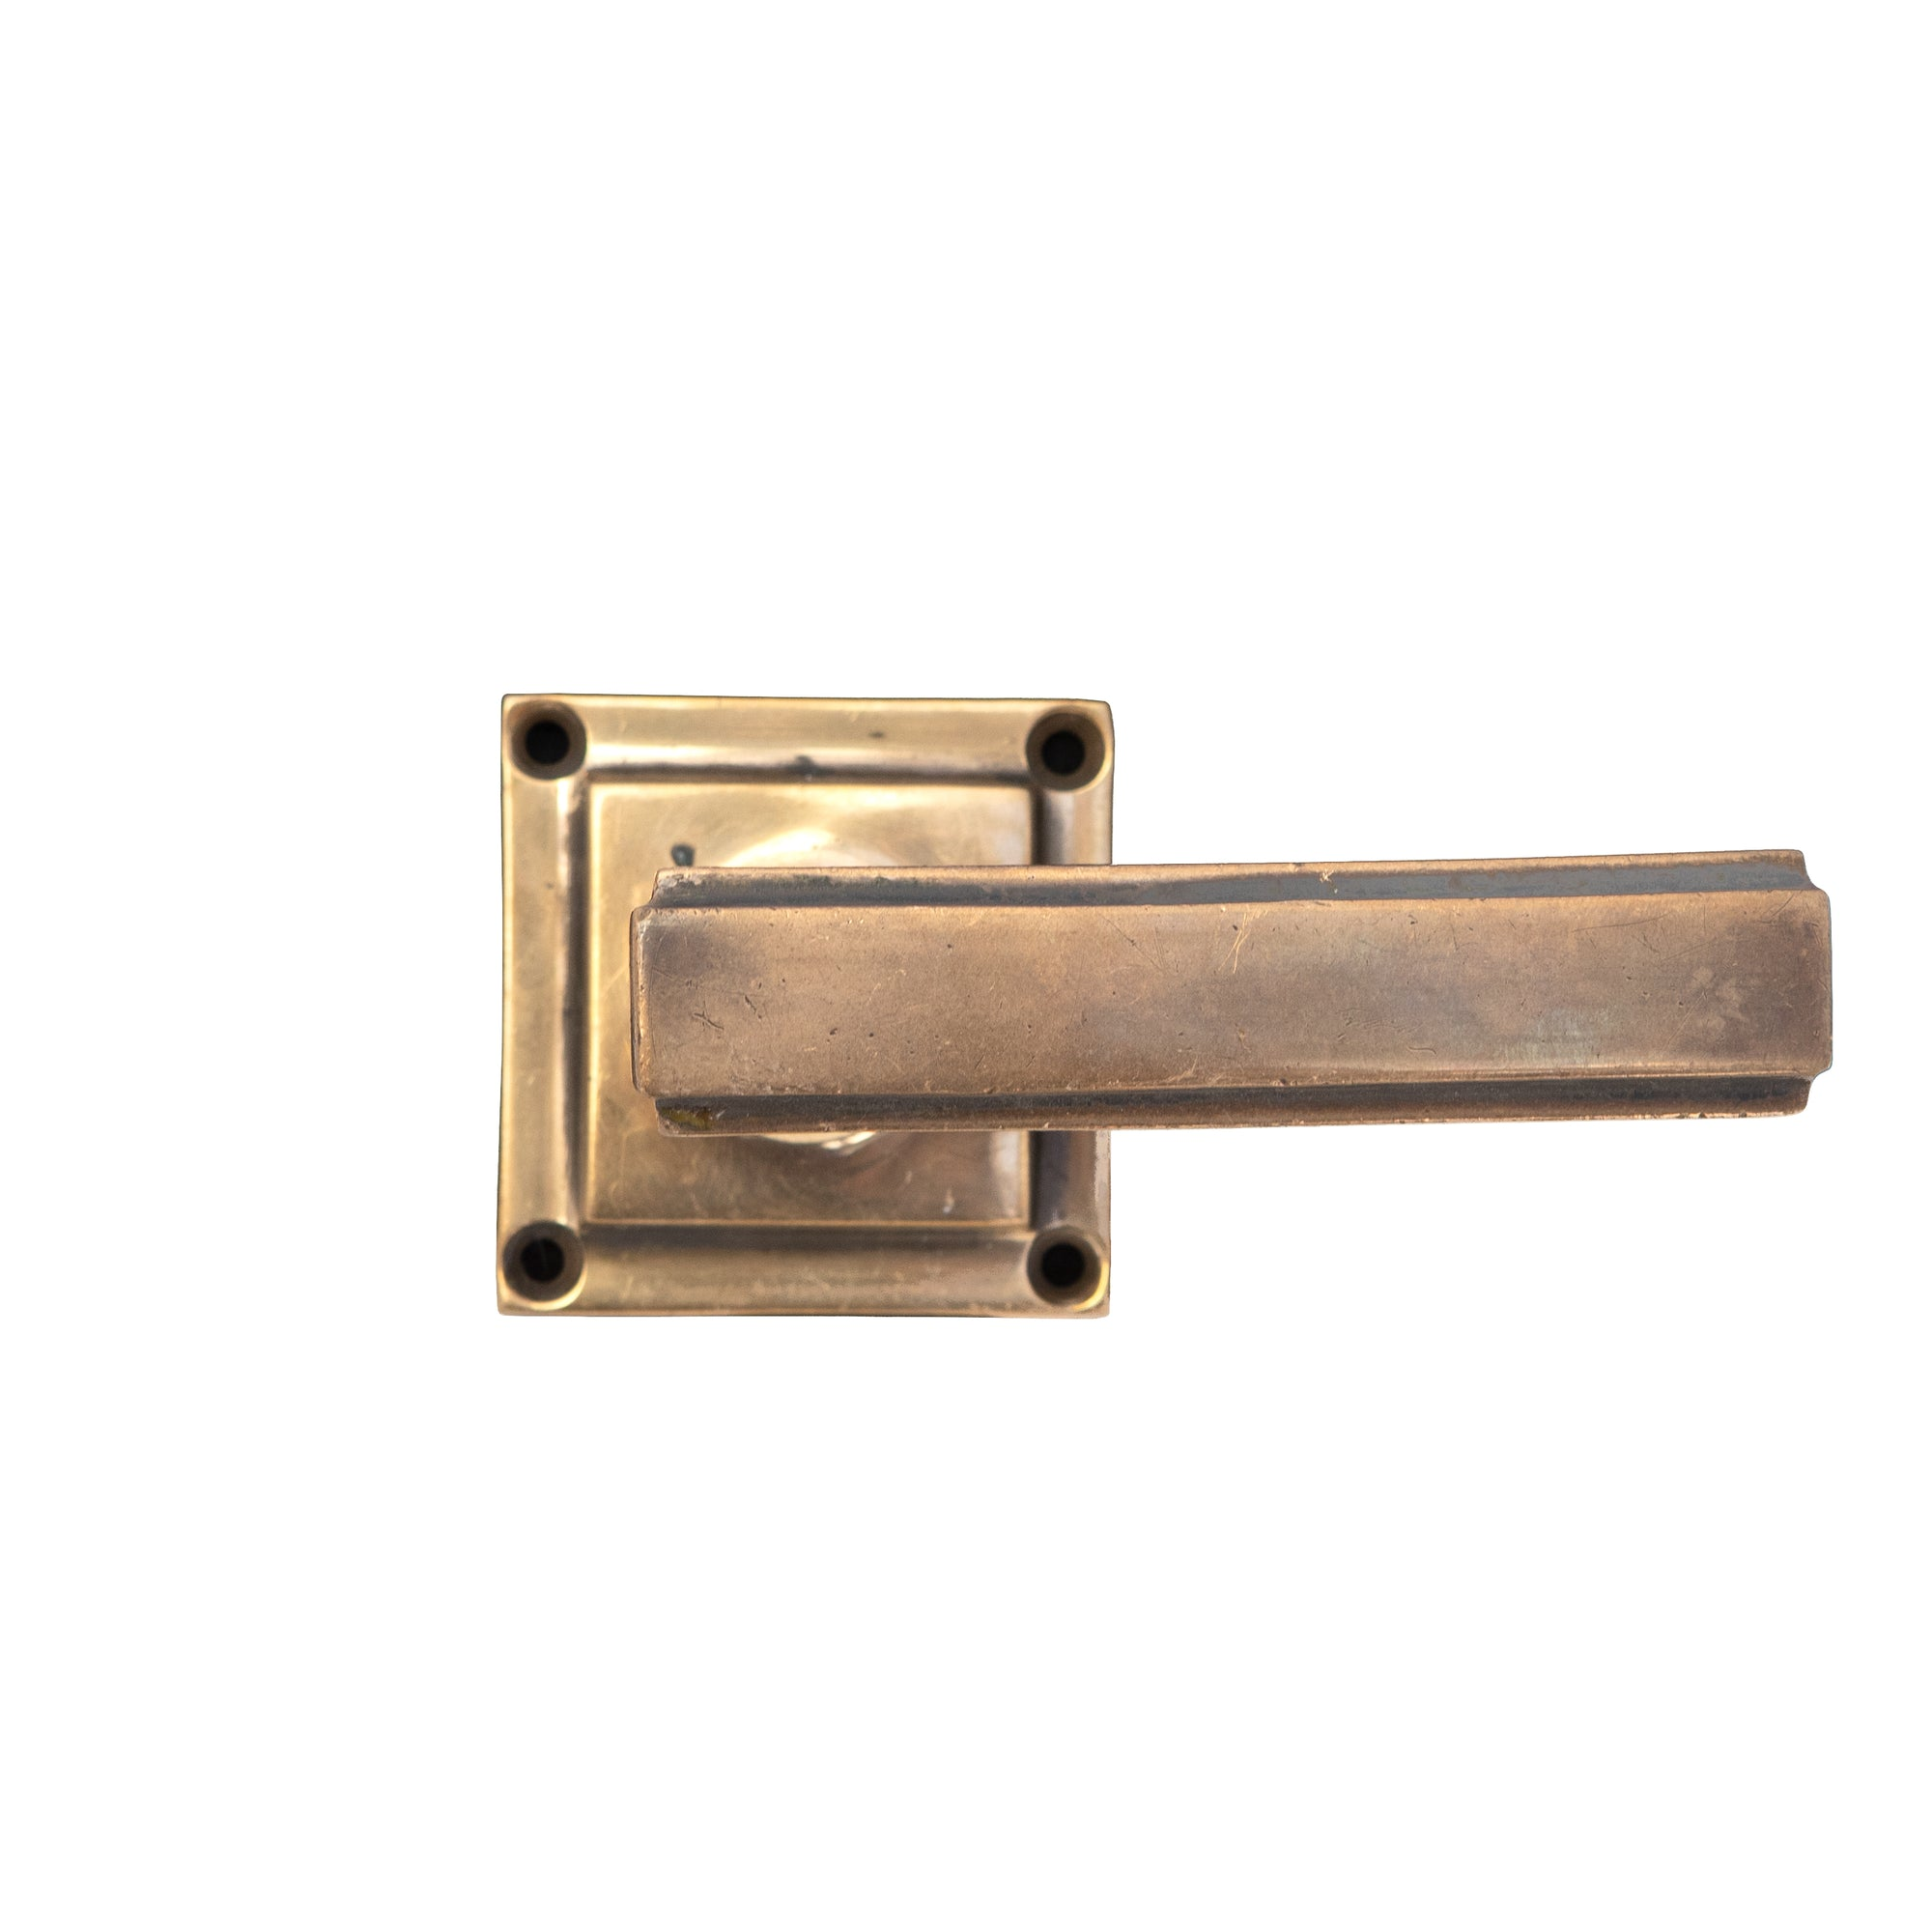 Original Art Deco Brass Lever Door Handle